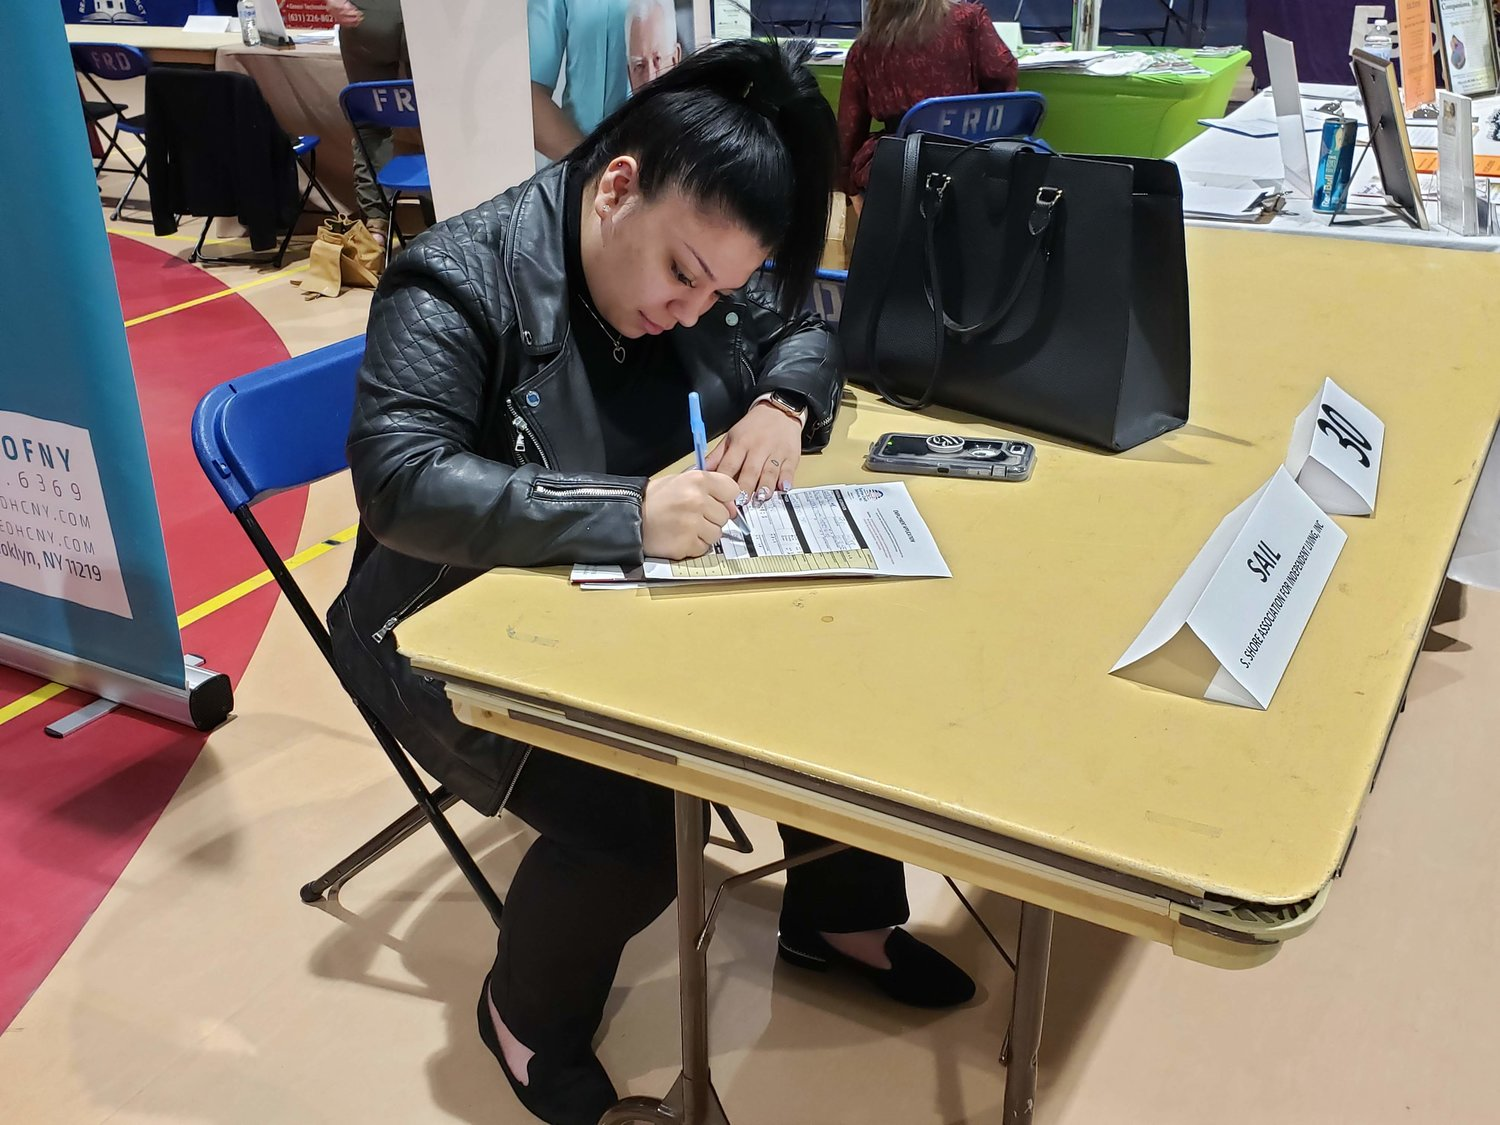 Nassau County Community College student, Kimberly Mejia, 19, from Hempstead, filled out a job application during the job fair at the Freeport Recreation Center on May 9.